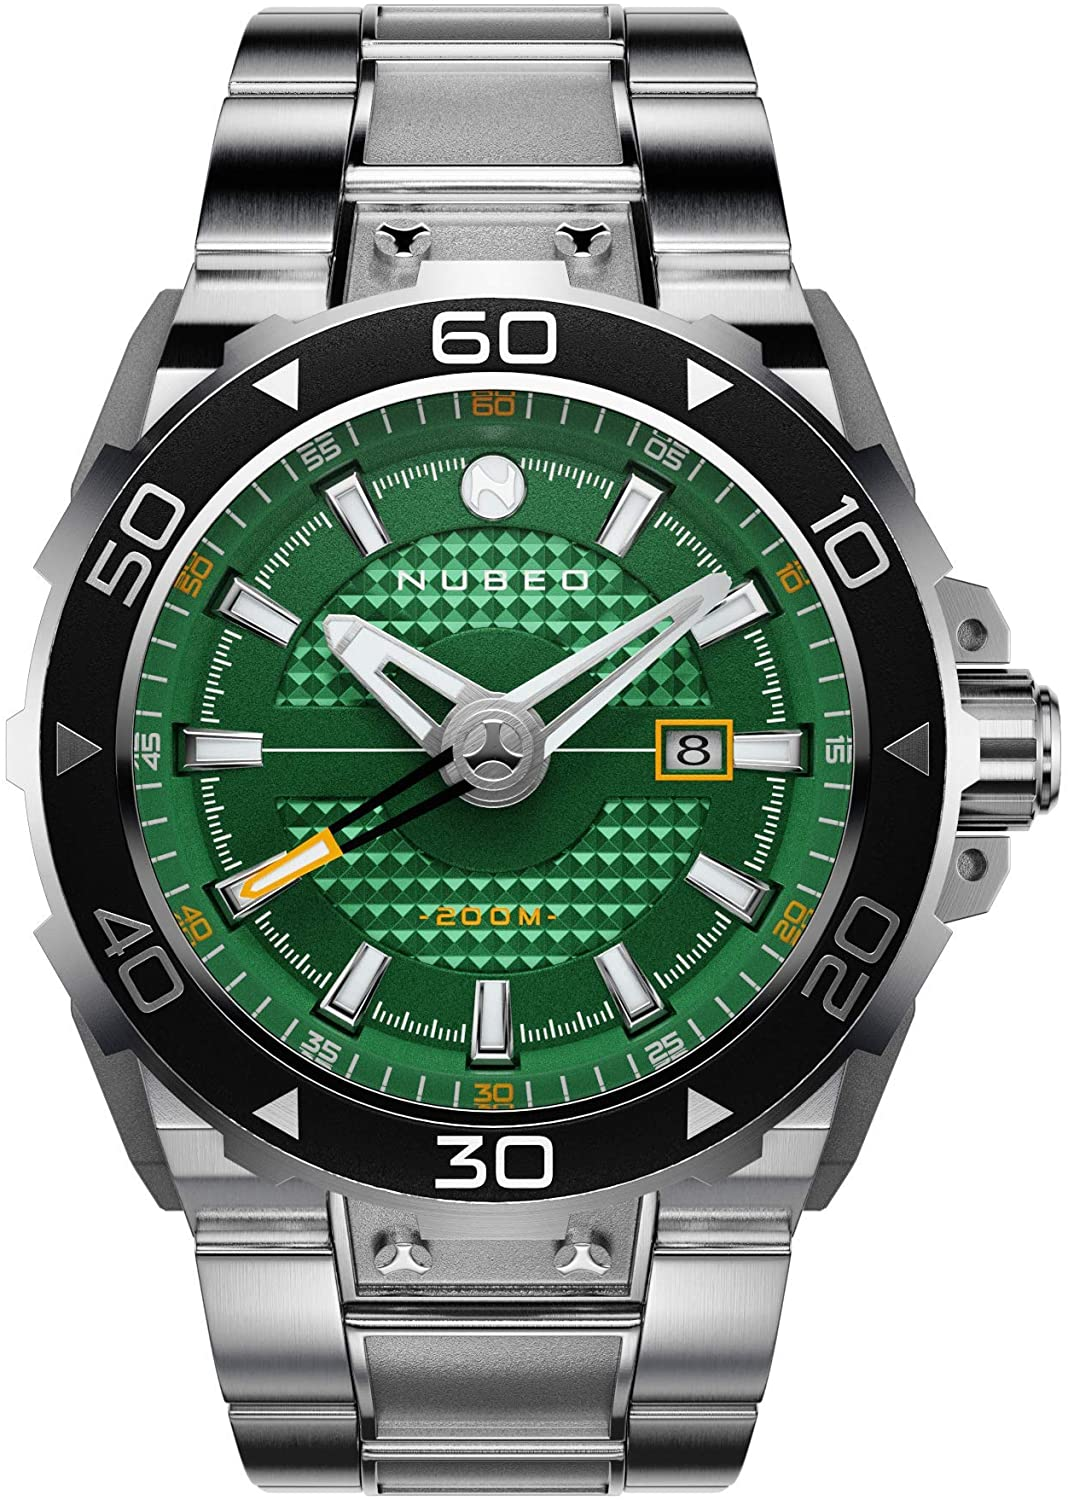 Nubeo Explorer Men's Automatic 3 Hands Watch with Green dial and Solid Stainless Steel Bracelet - NB-6014-22